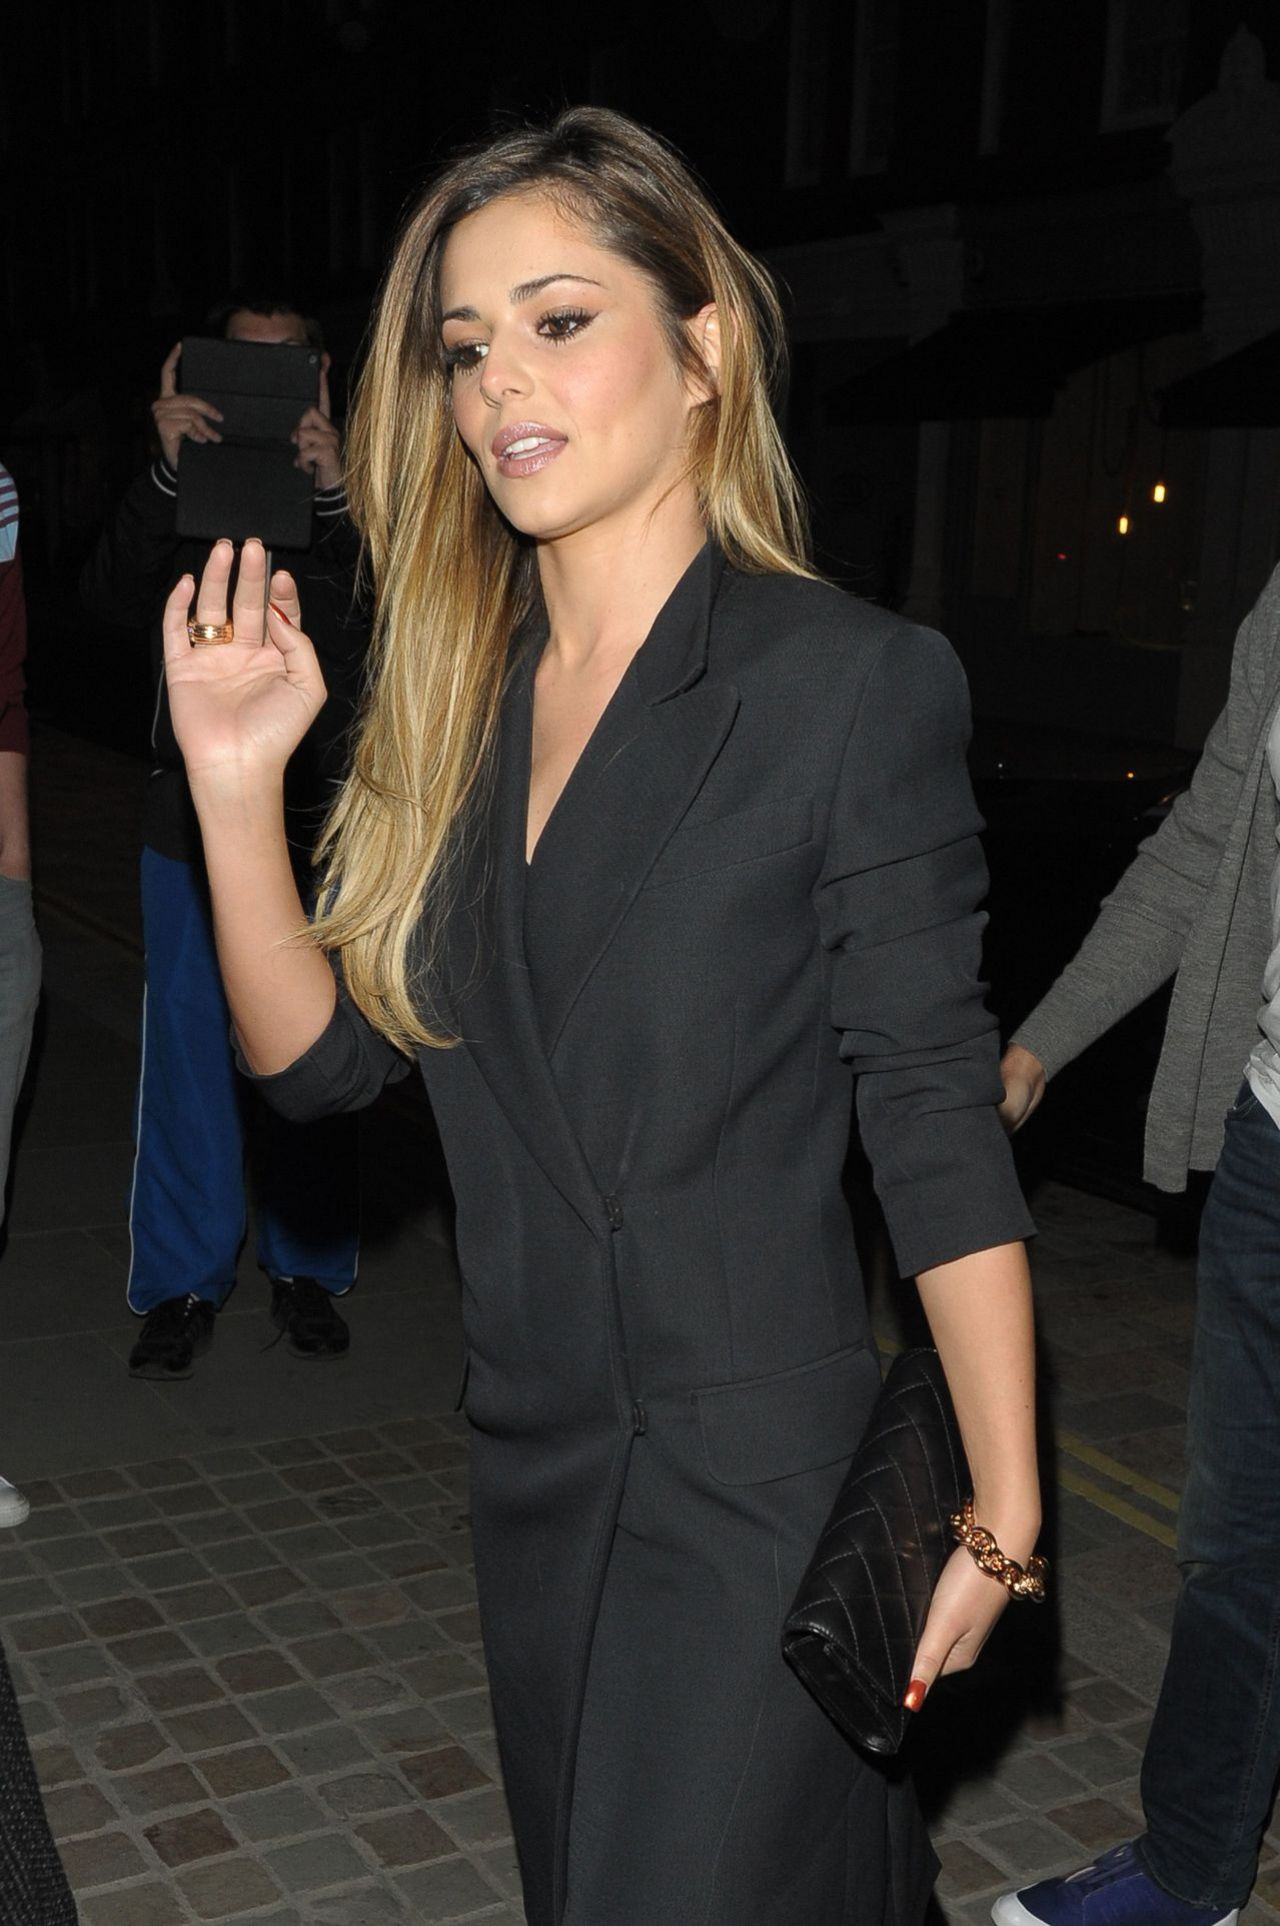 Cheryl Cole night Out Style - Chiltern Firehouse Restaurant in London - May 2014